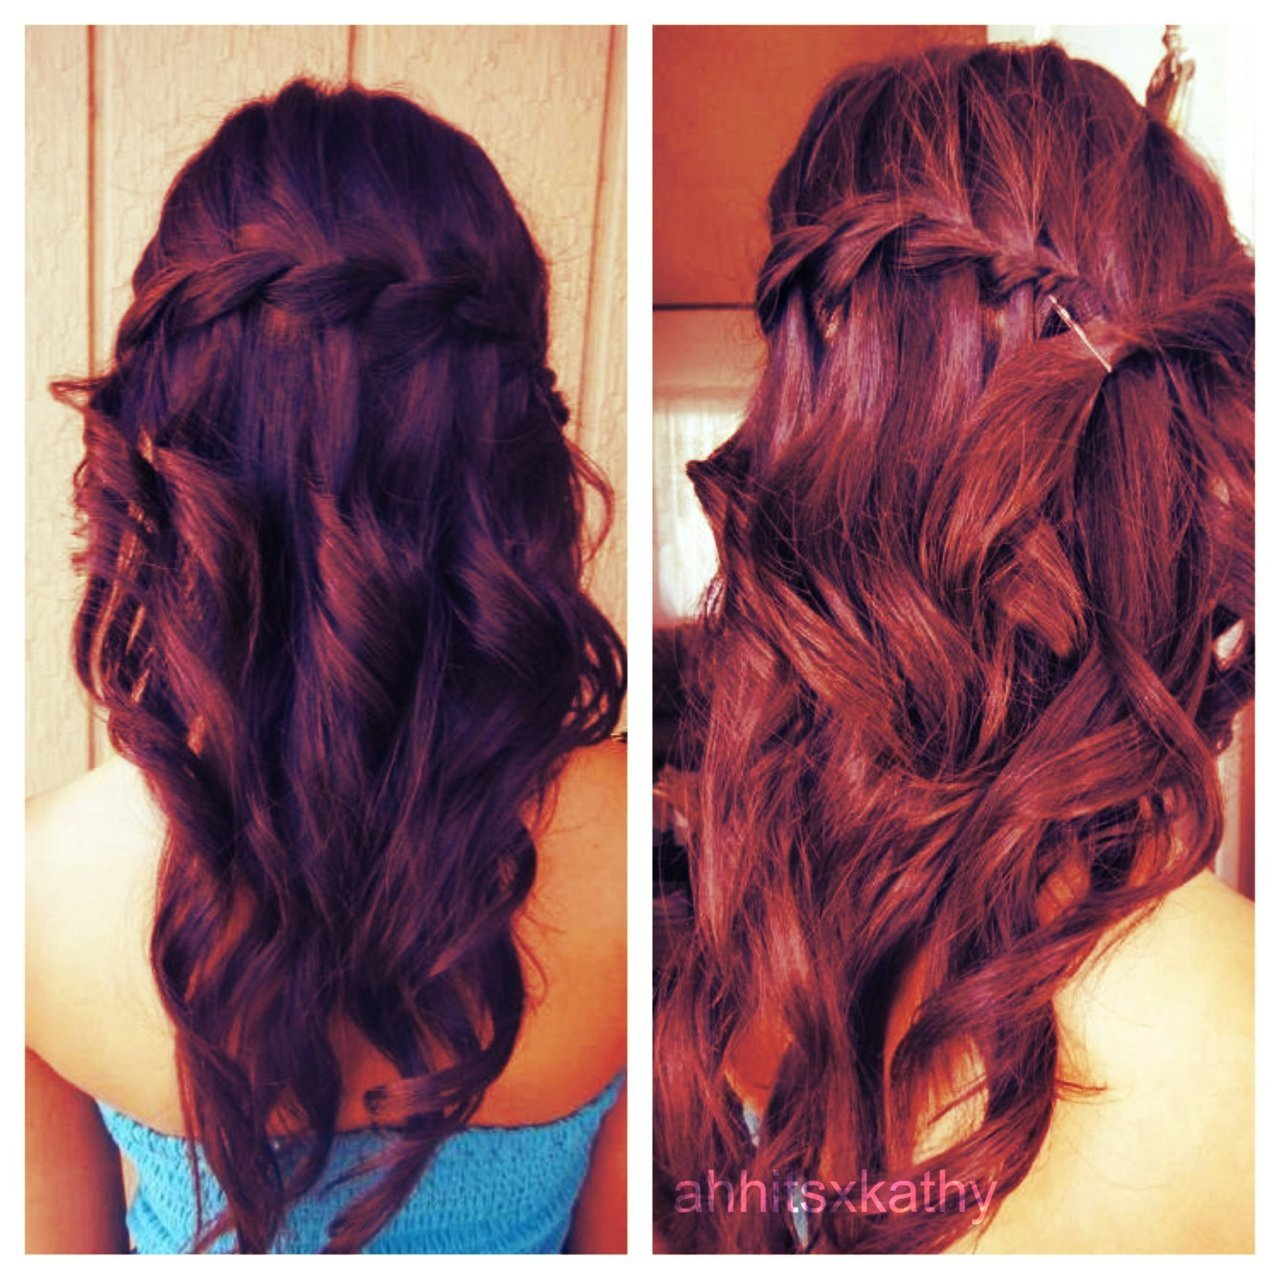 fuckyeahbraids:  waterfall braid with curls  ahhitsxkathy